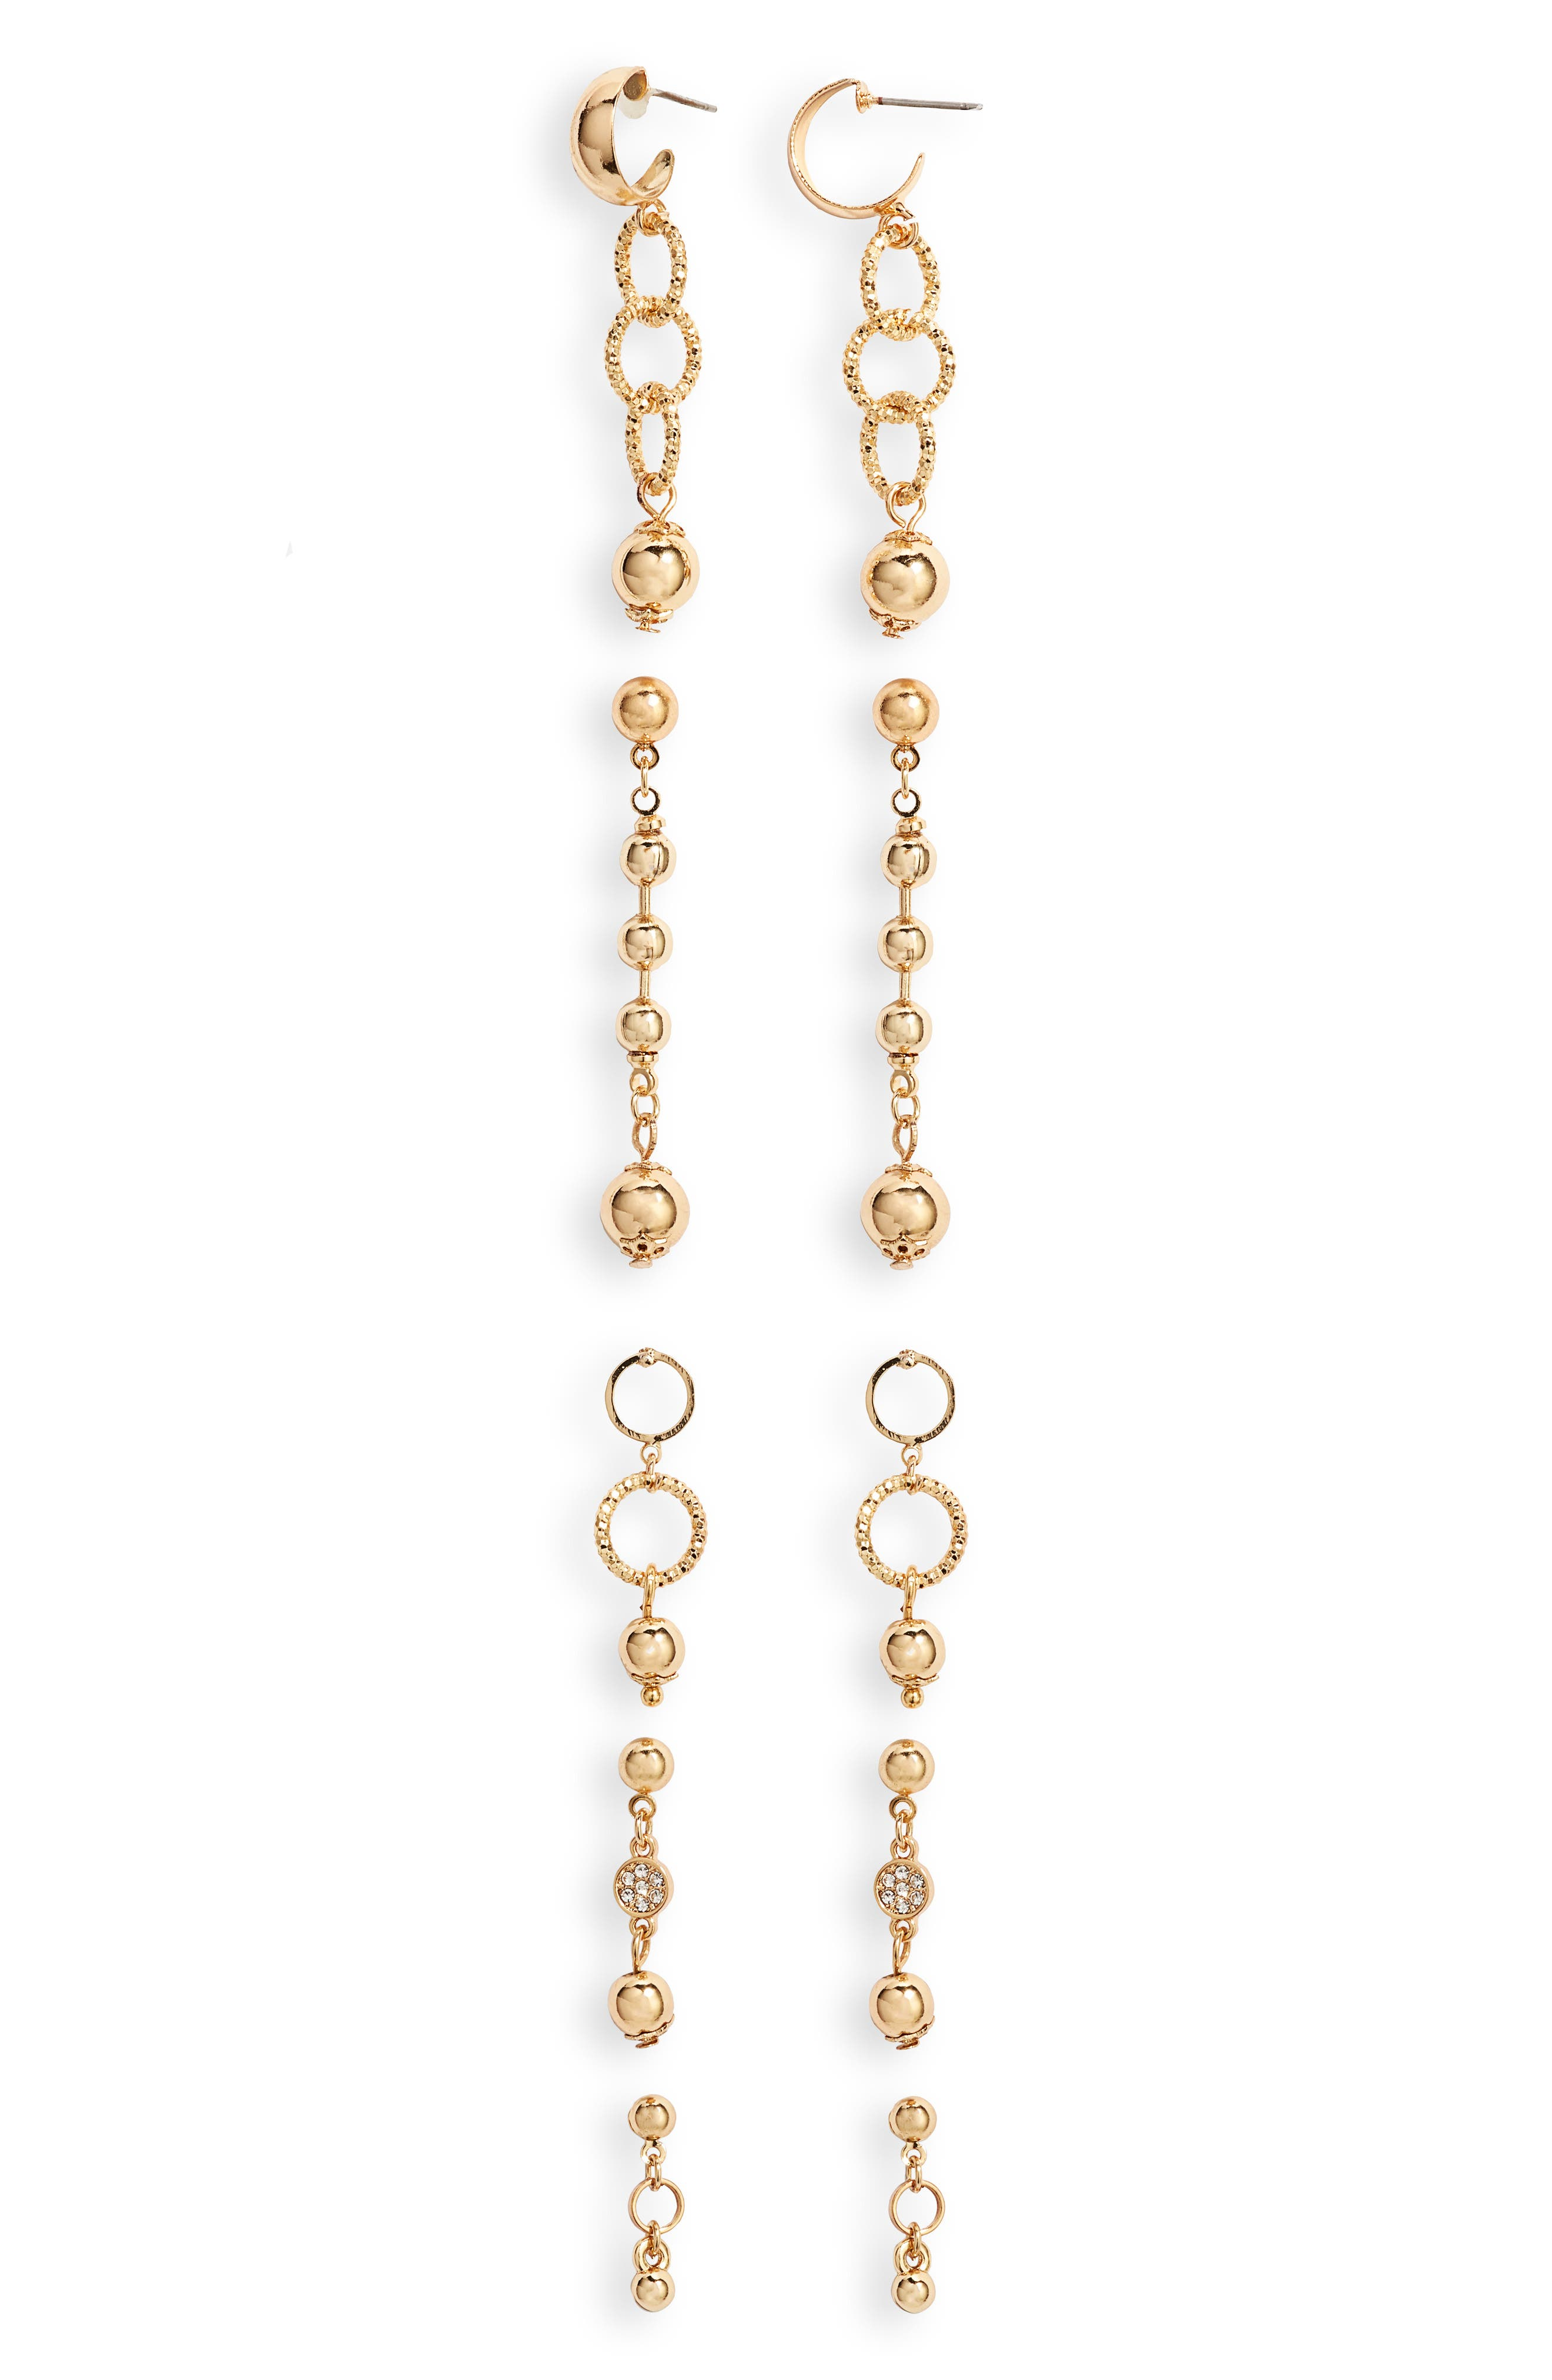 Elevate any look with this five-pack of dainty drop earrings in various styles and lengths. Style Name: Ettika Set Of 5 Drop Earrings. Style Number: 5810370. Available in stores.